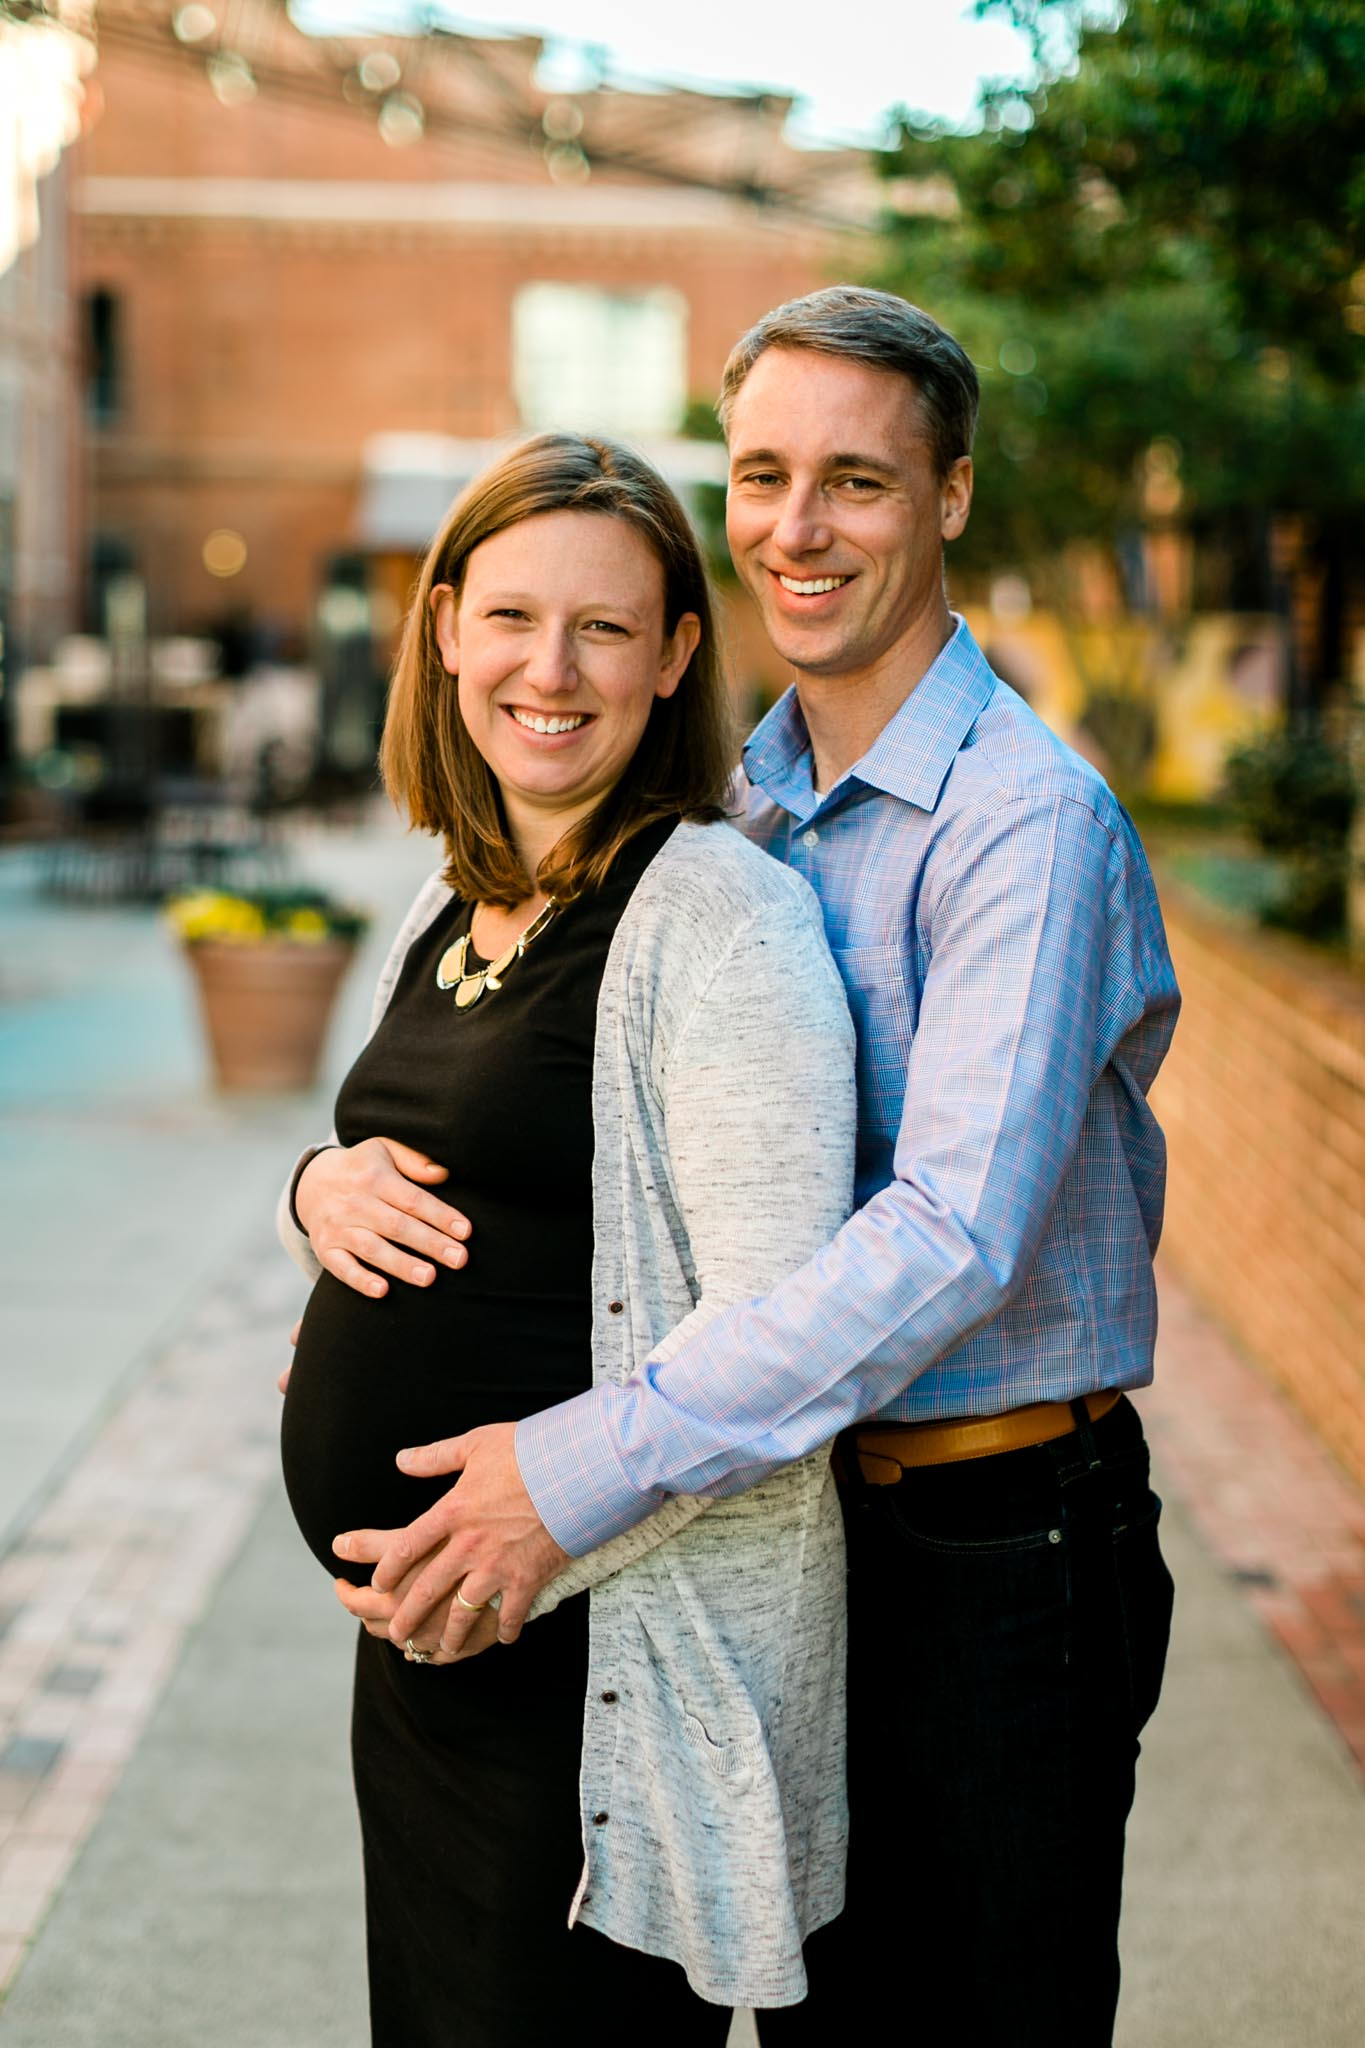 Pregnancy portrait at American Tobacco Campus   Durham Maternity Photographer   By G. Lin Photography